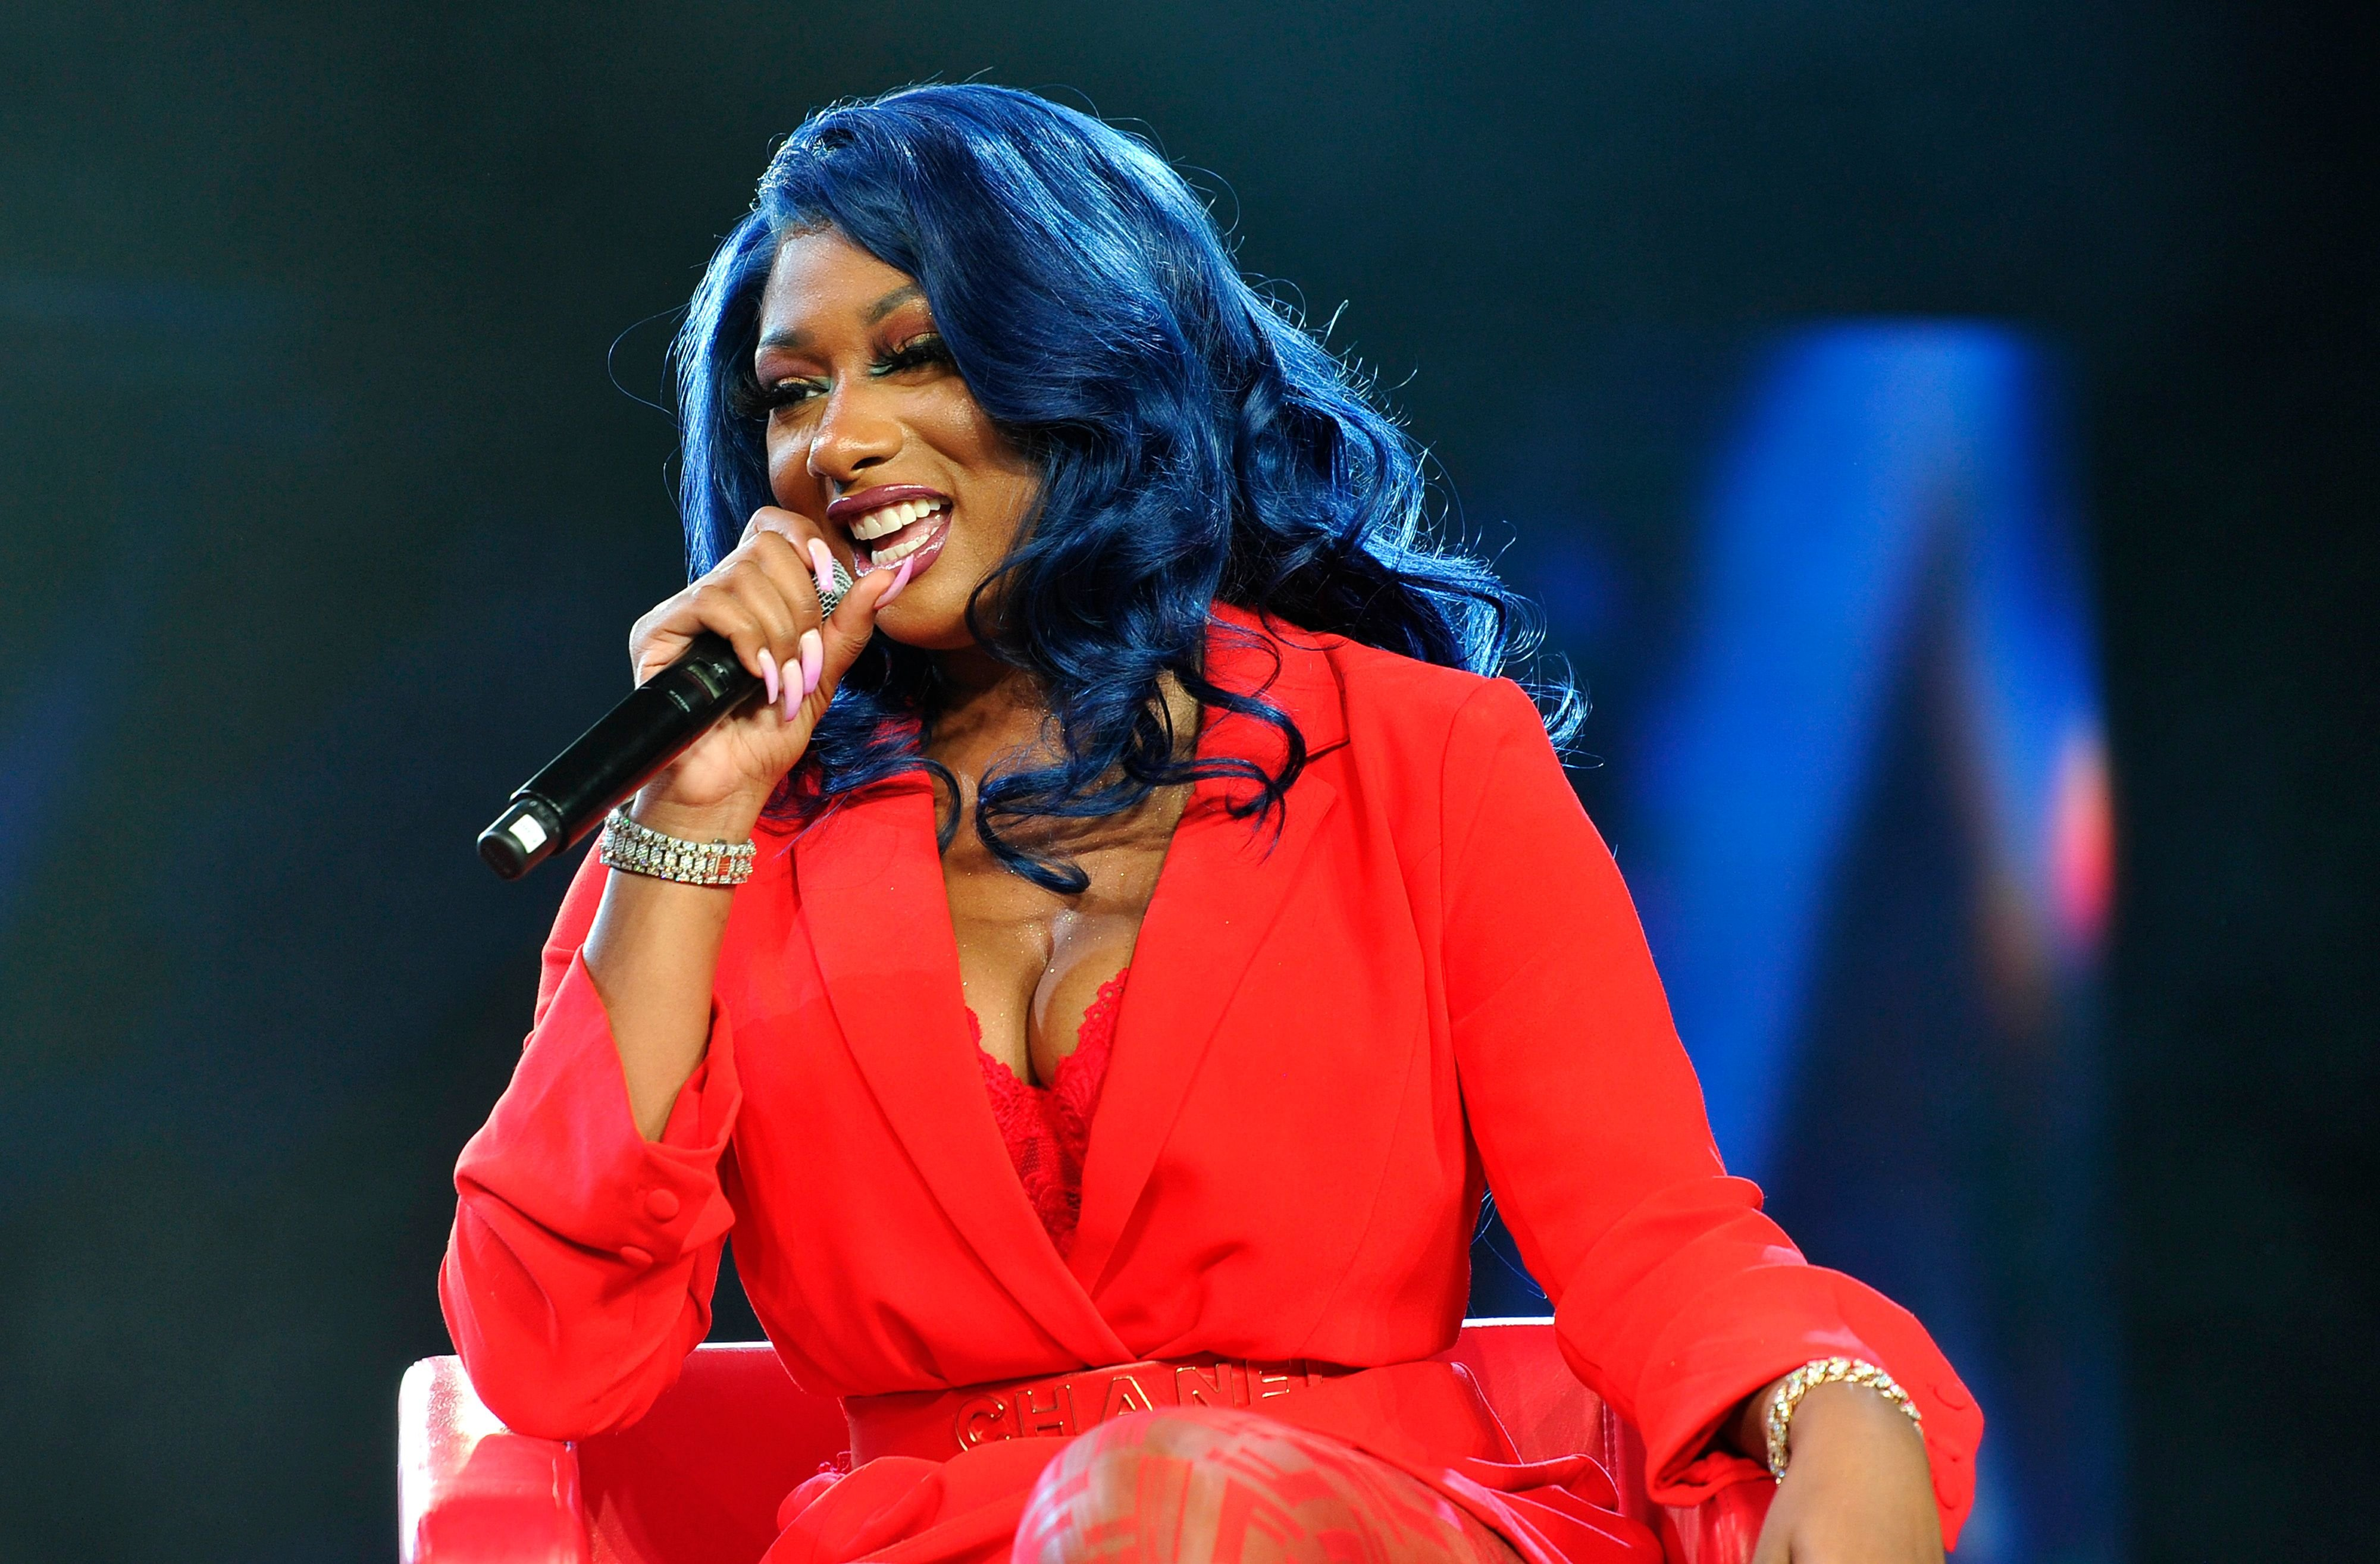 Megan Thee Stallion speaks onstage at Beautycon Festival Los Angeles 2019 at Los Angeles Convention Center on August 11, 2019 | Photo: Getty Images